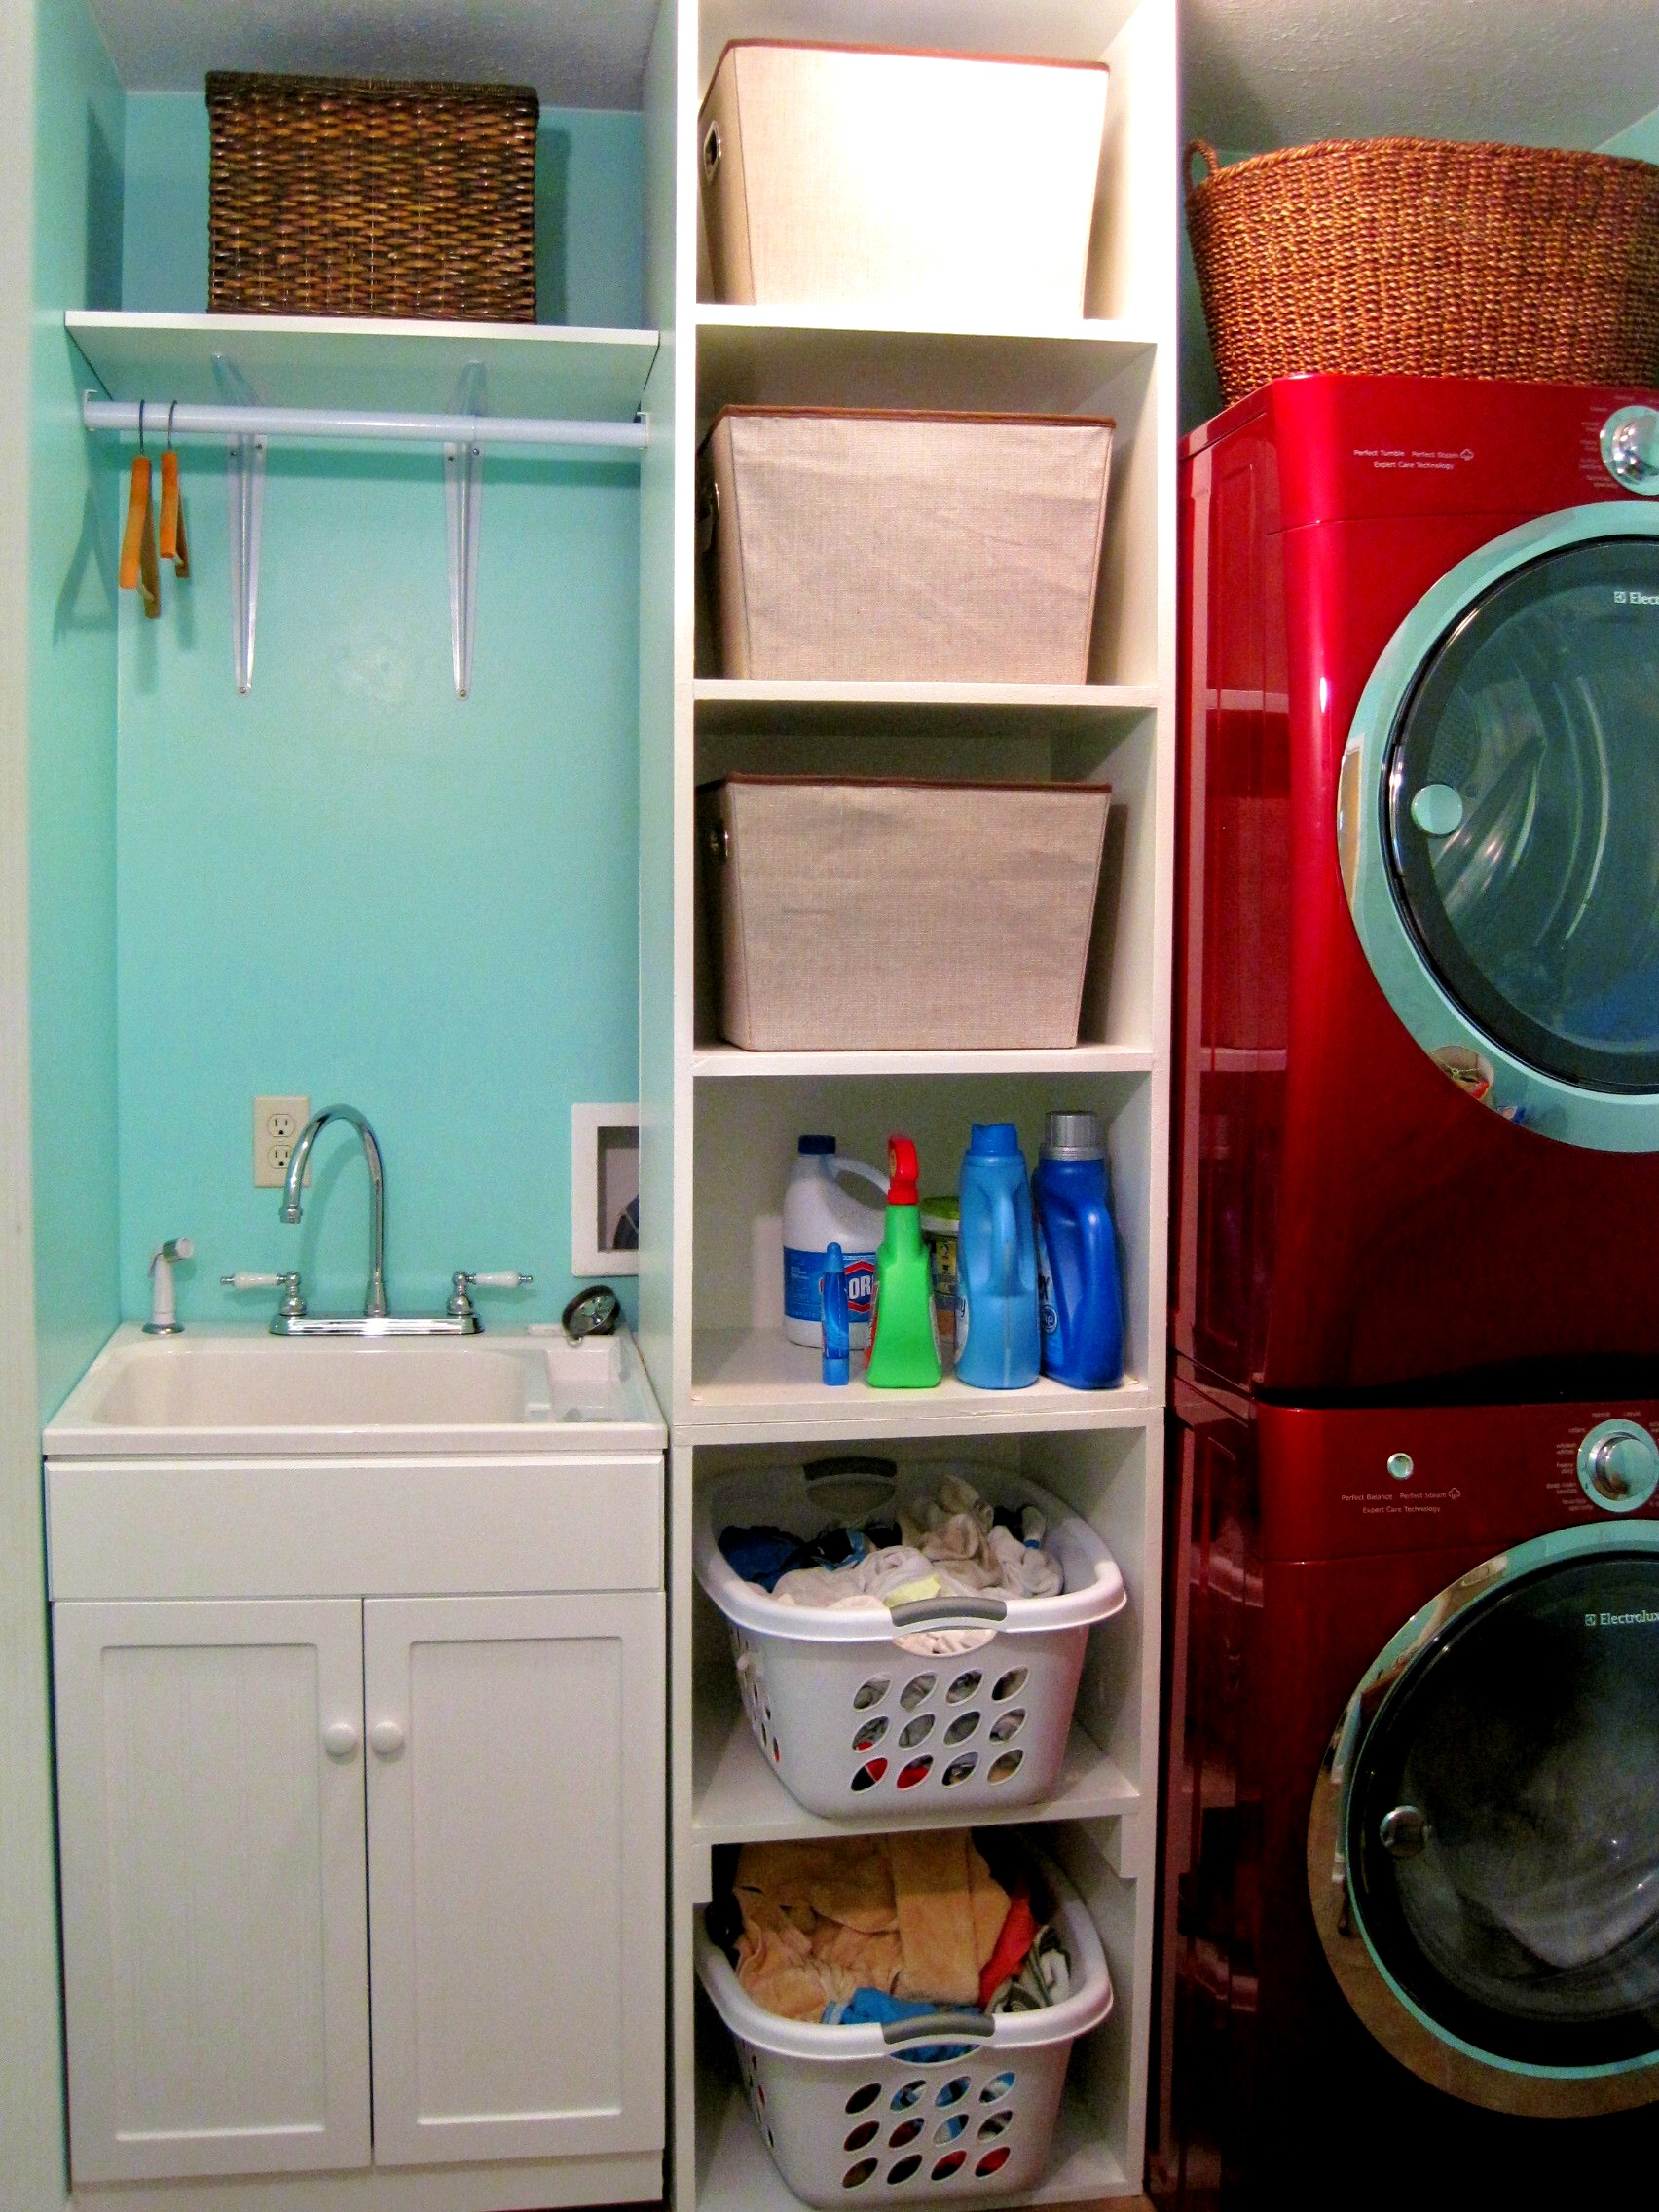 Laundry Room Shelving Ideas for Small Spaces You Need to ... on Laundry Room Organization Ideas  id=52135